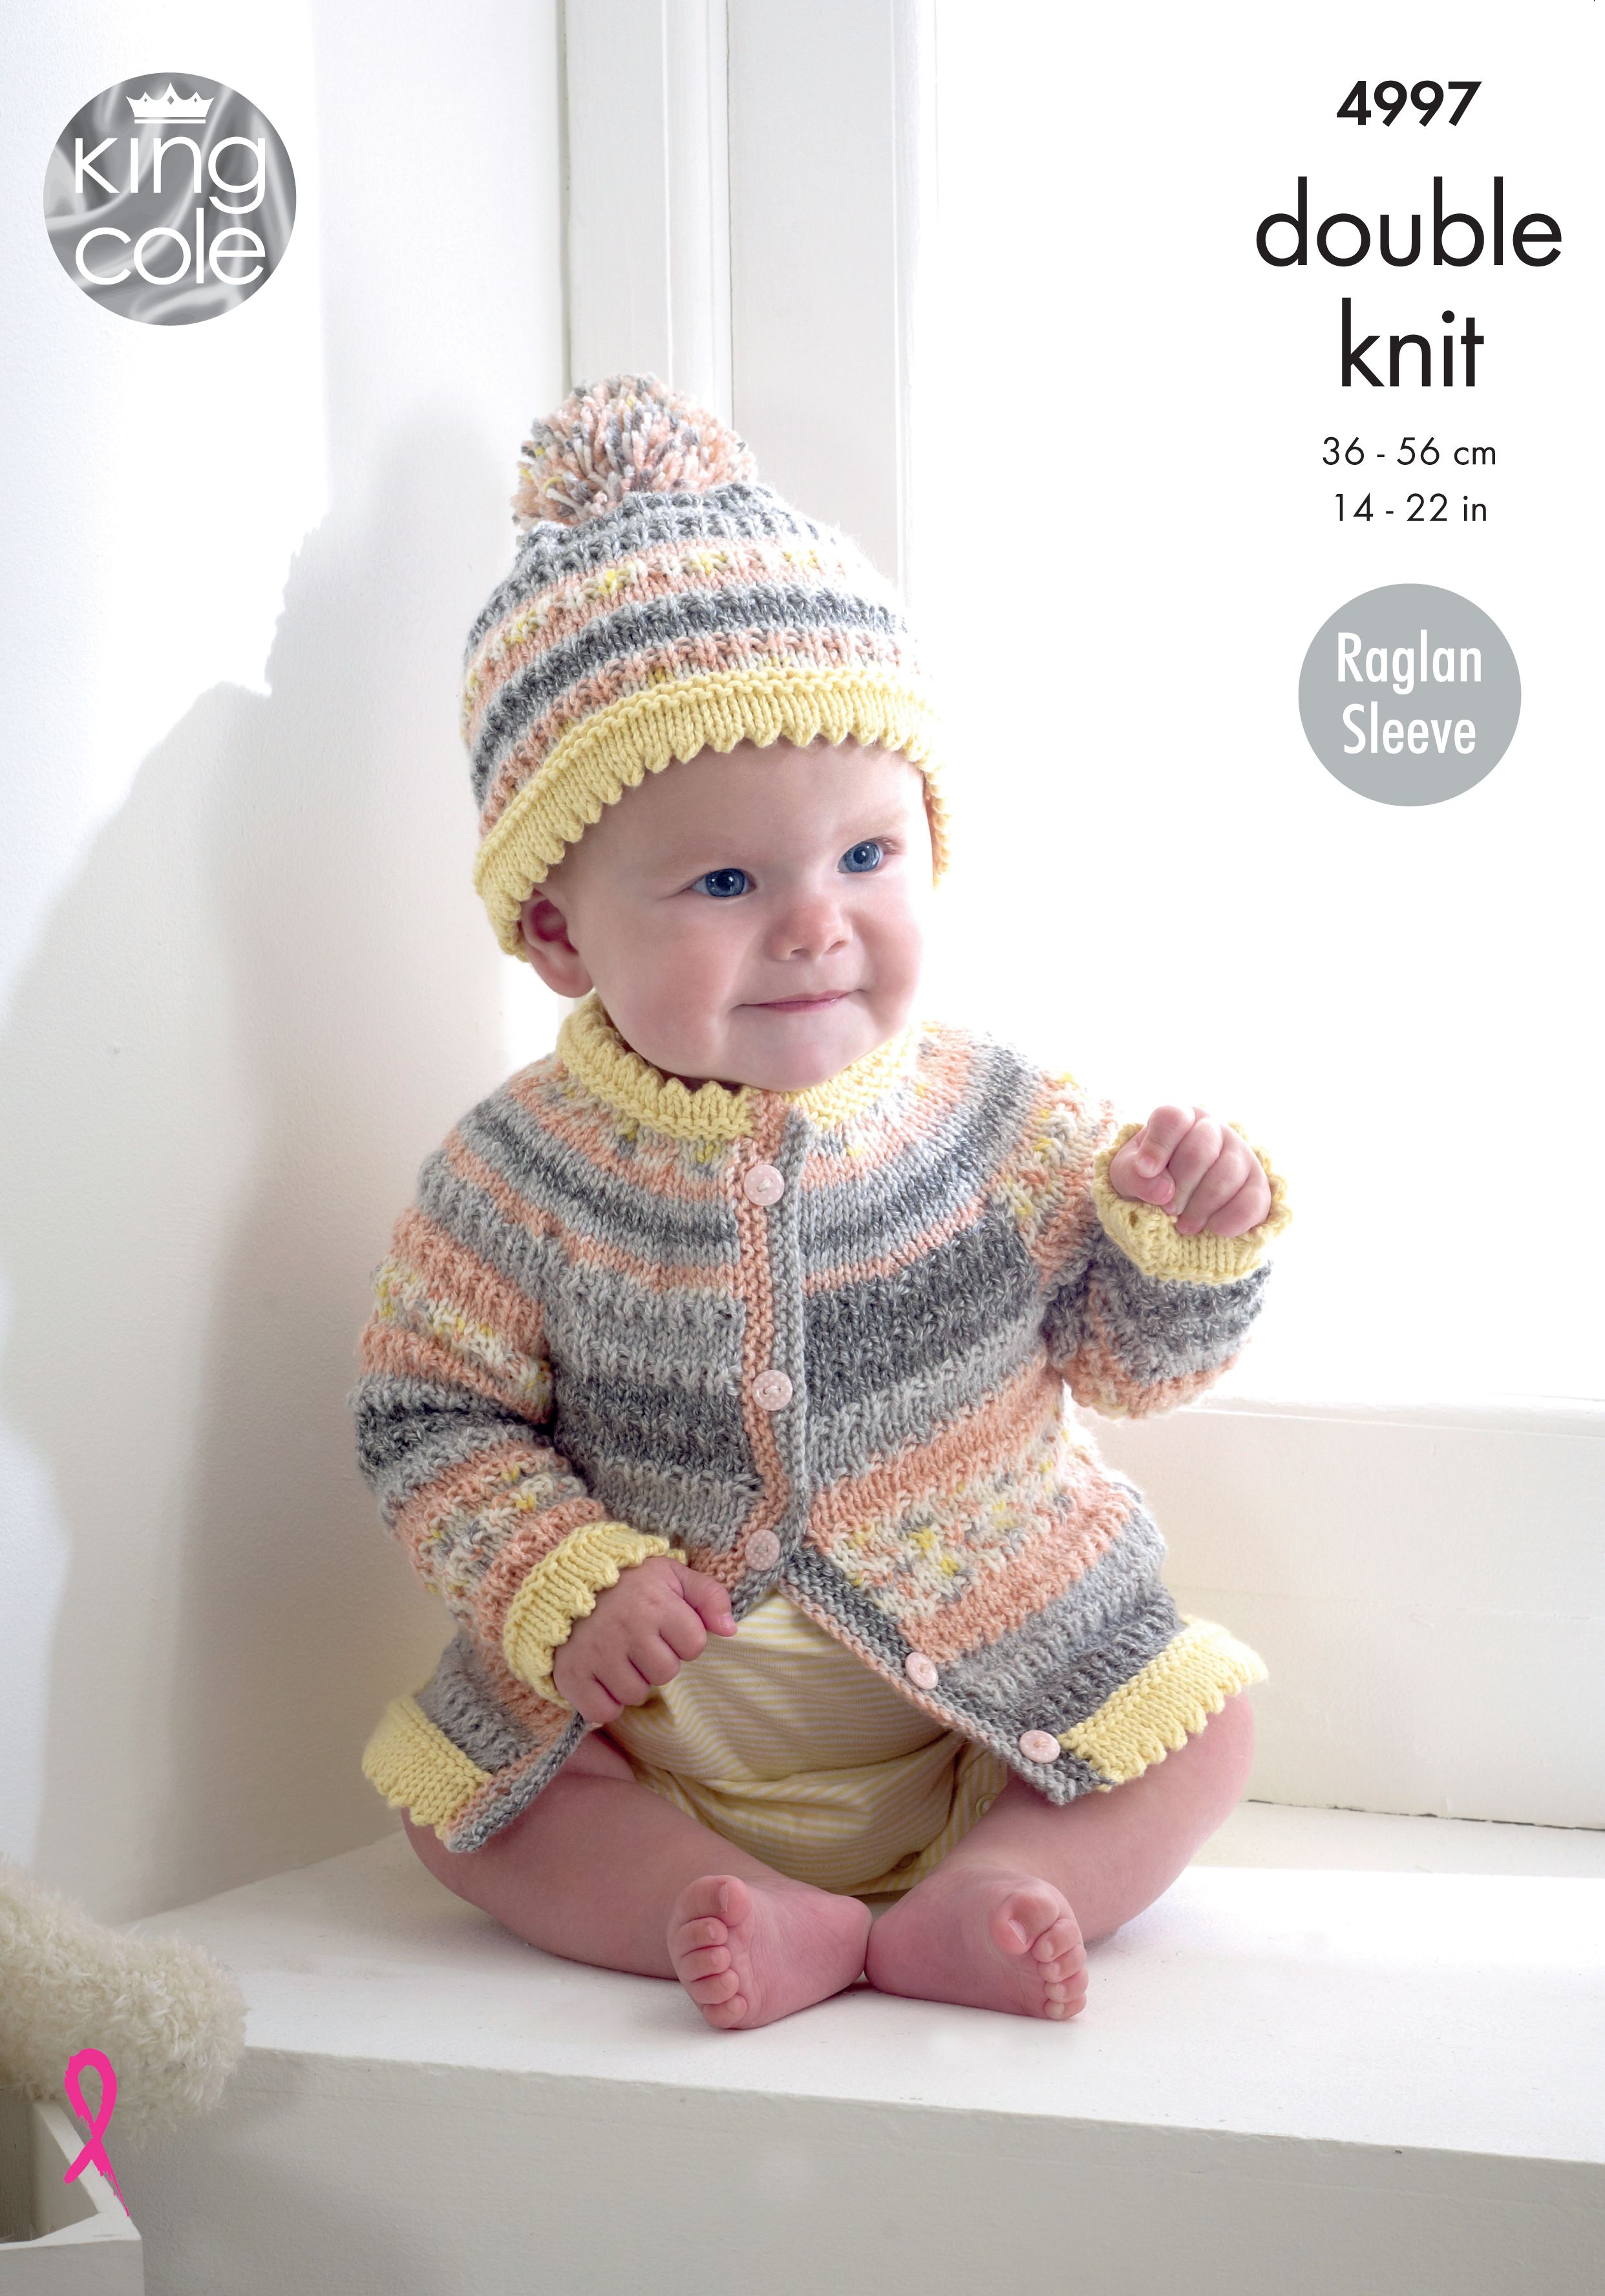 Cardigans, Sweater & Hat Knitted in Various DK - King Cole ...